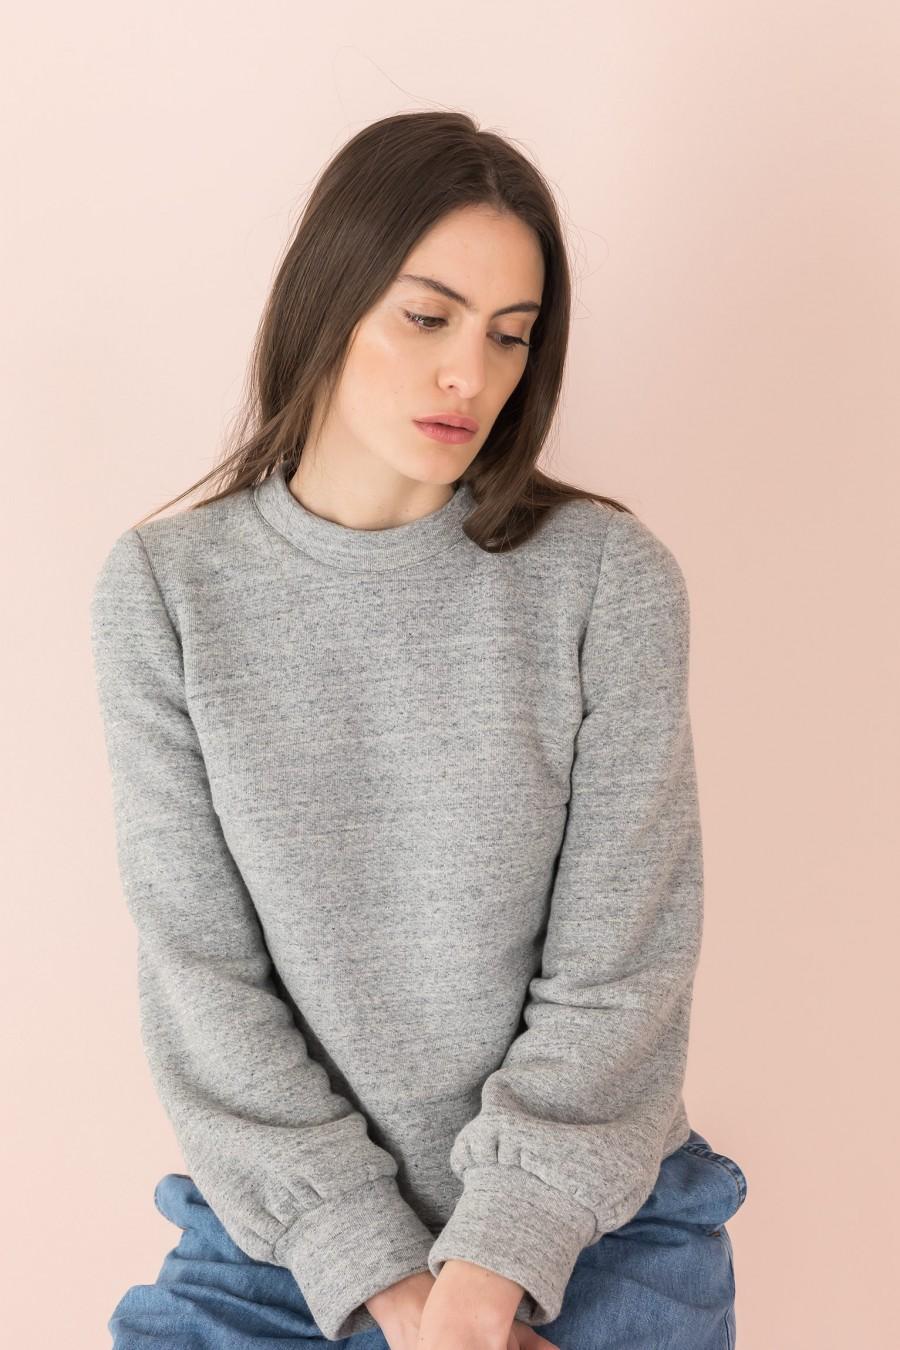 sweatshirt with detachable collars